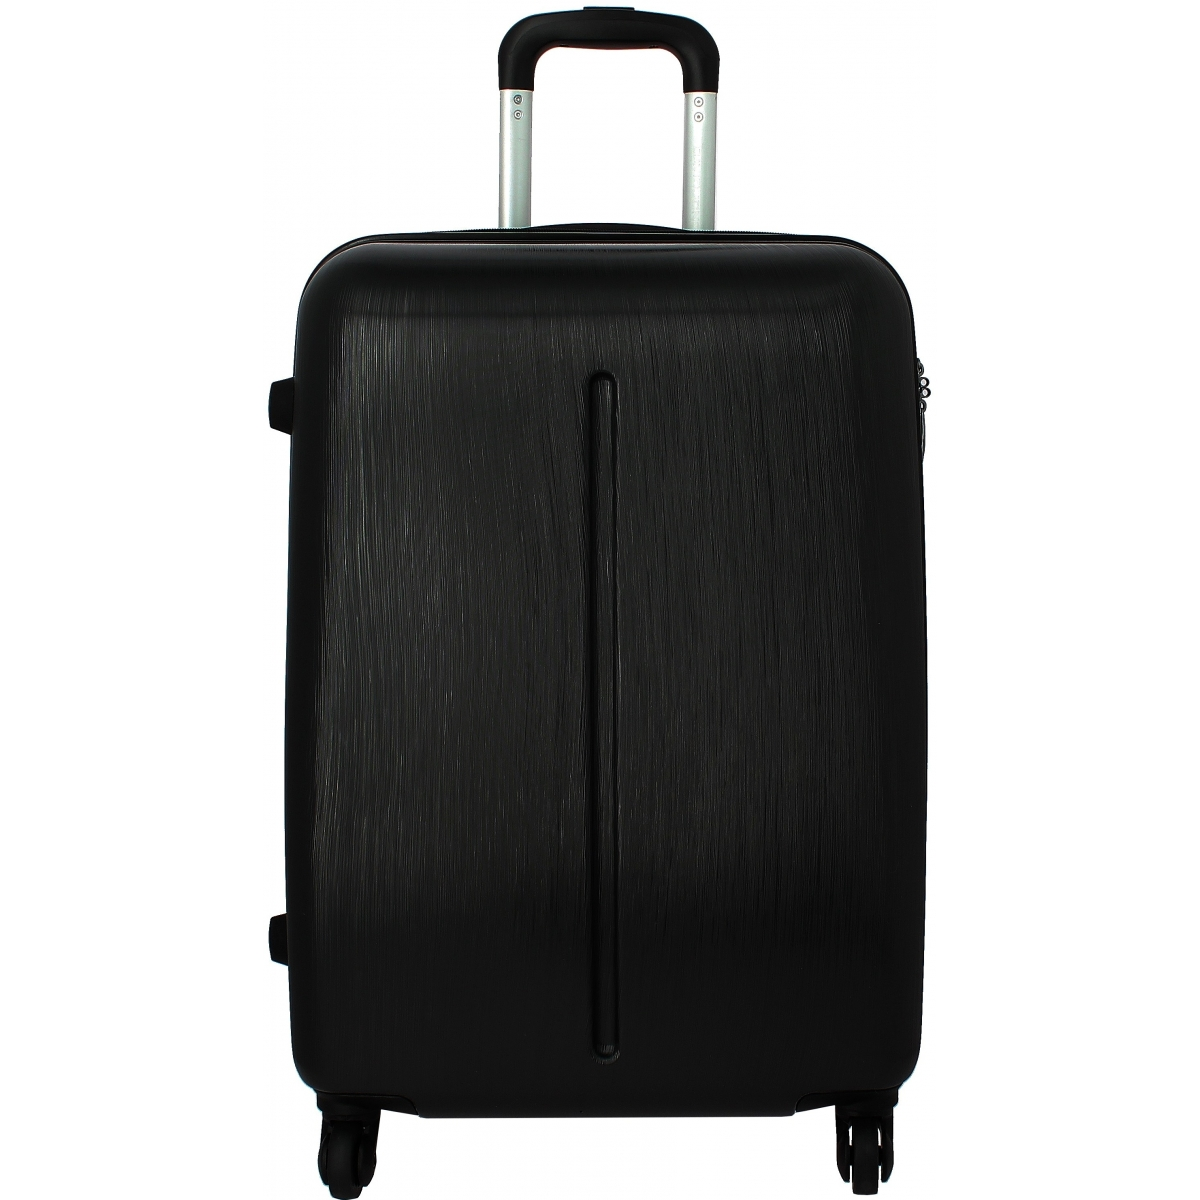 valise rigide david jones taille m 65 cm tsa ba10141m couleur principale noir promotion. Black Bedroom Furniture Sets. Home Design Ideas